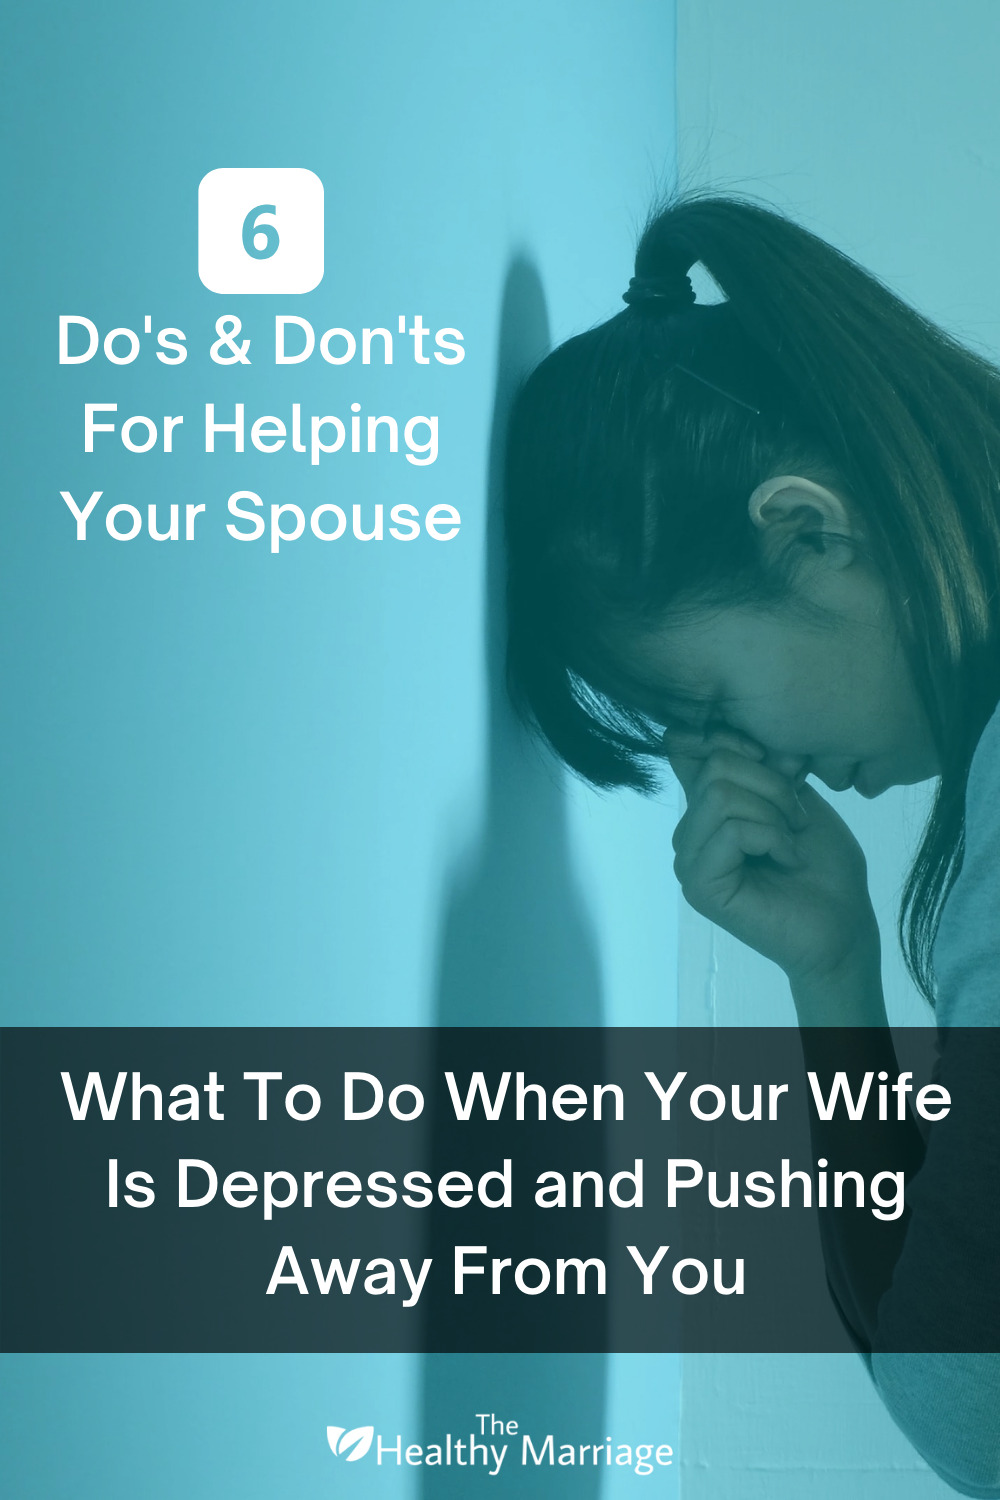 What To Do When Your Wife Is Depressed and Pushing Away From You Pinterest Pin